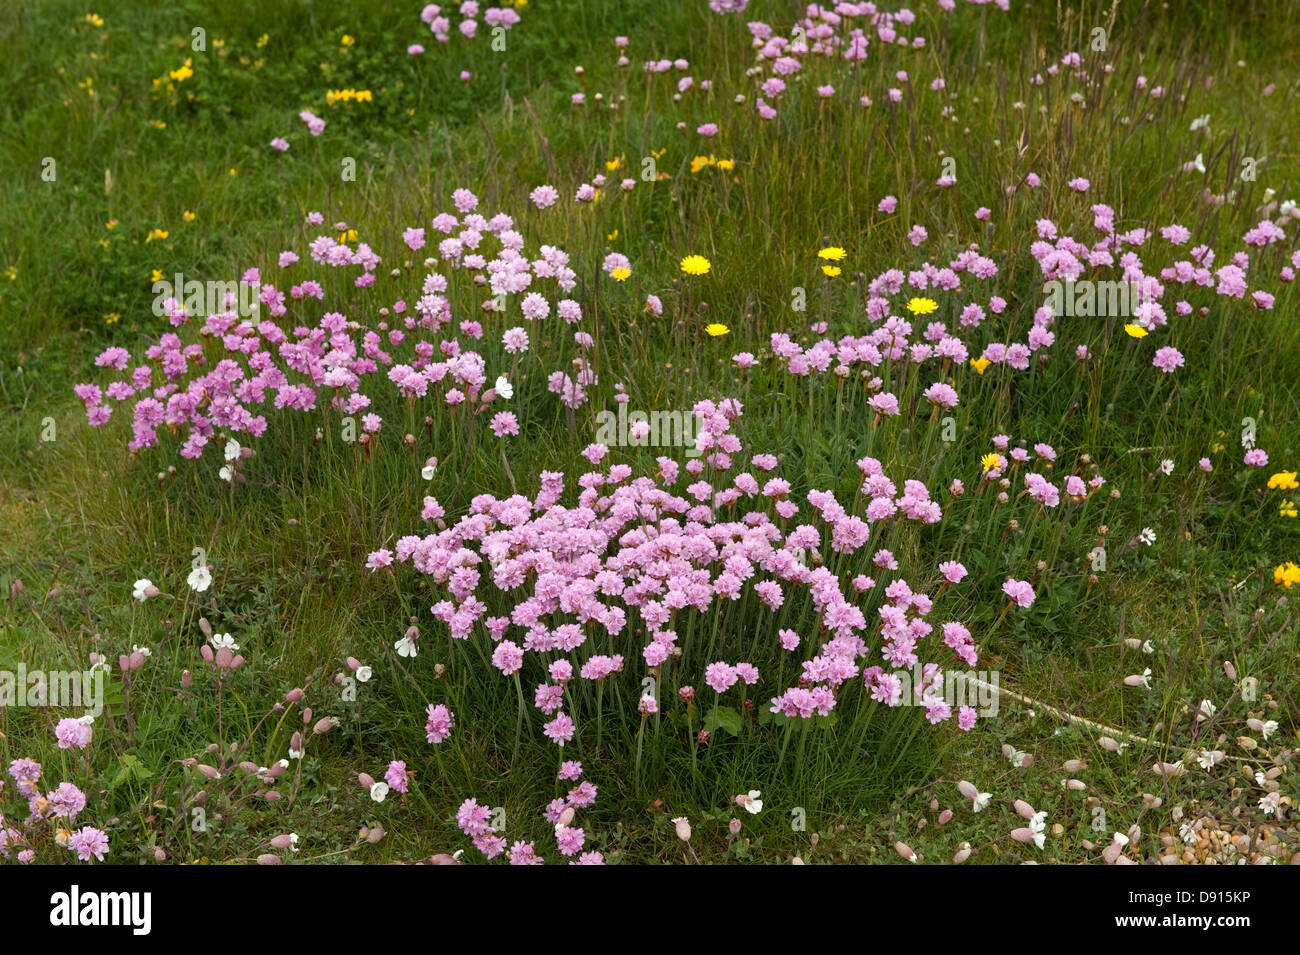 Thrift, Armeria maritima, flowering on shingle at Chesil Beach in Dorset - Stock Image